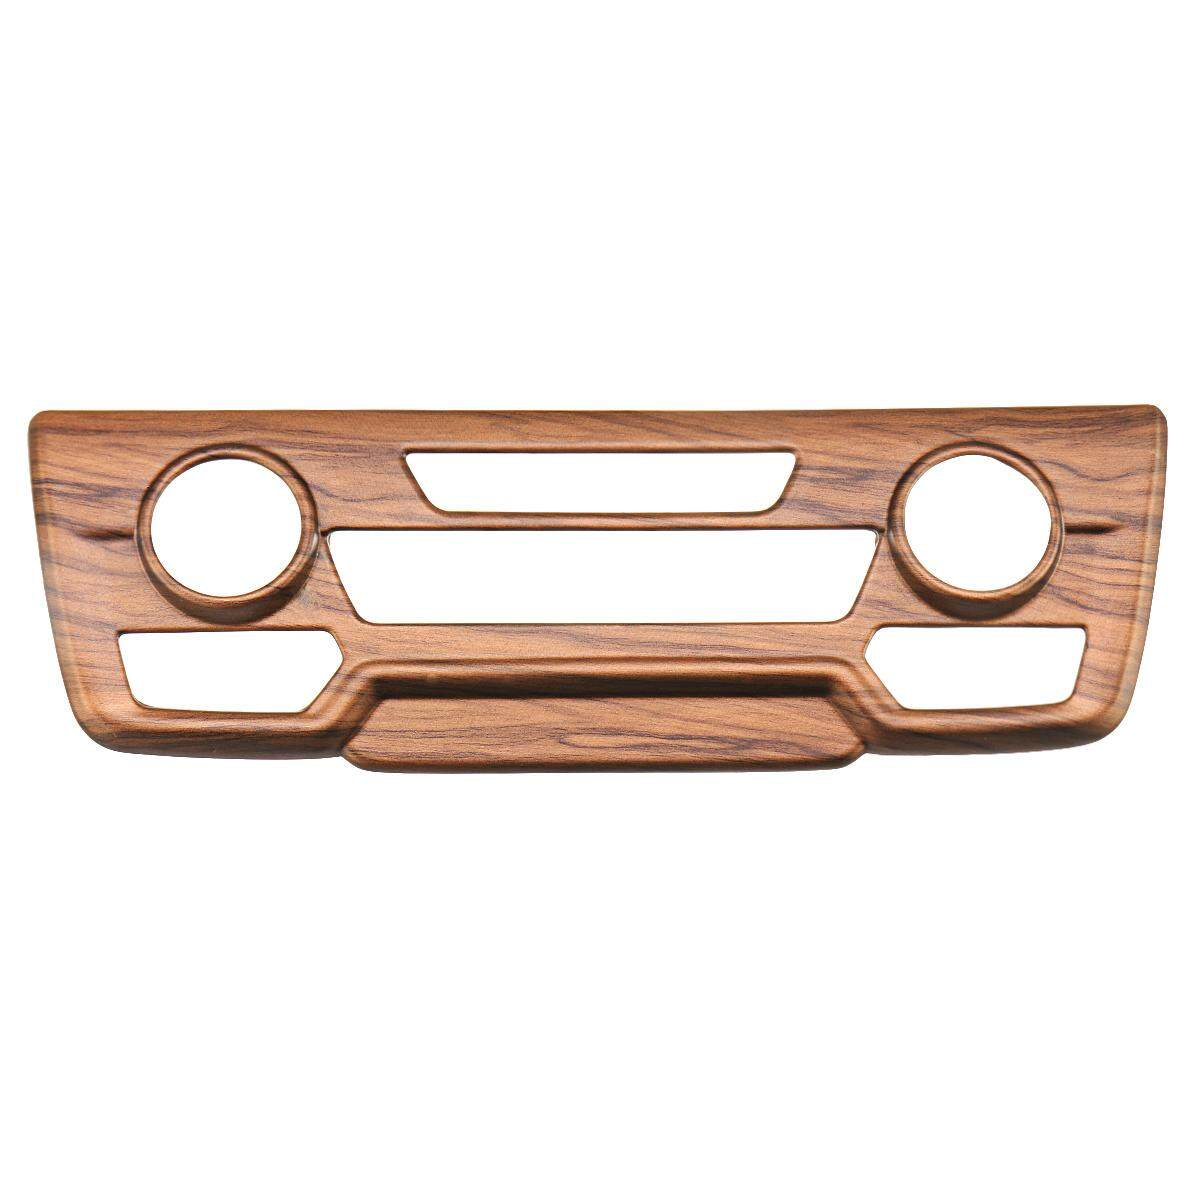 Peach Wood Grain Center Console CD Panel Cover Trim for Honda CRV CR-V 2017-2018 - intl